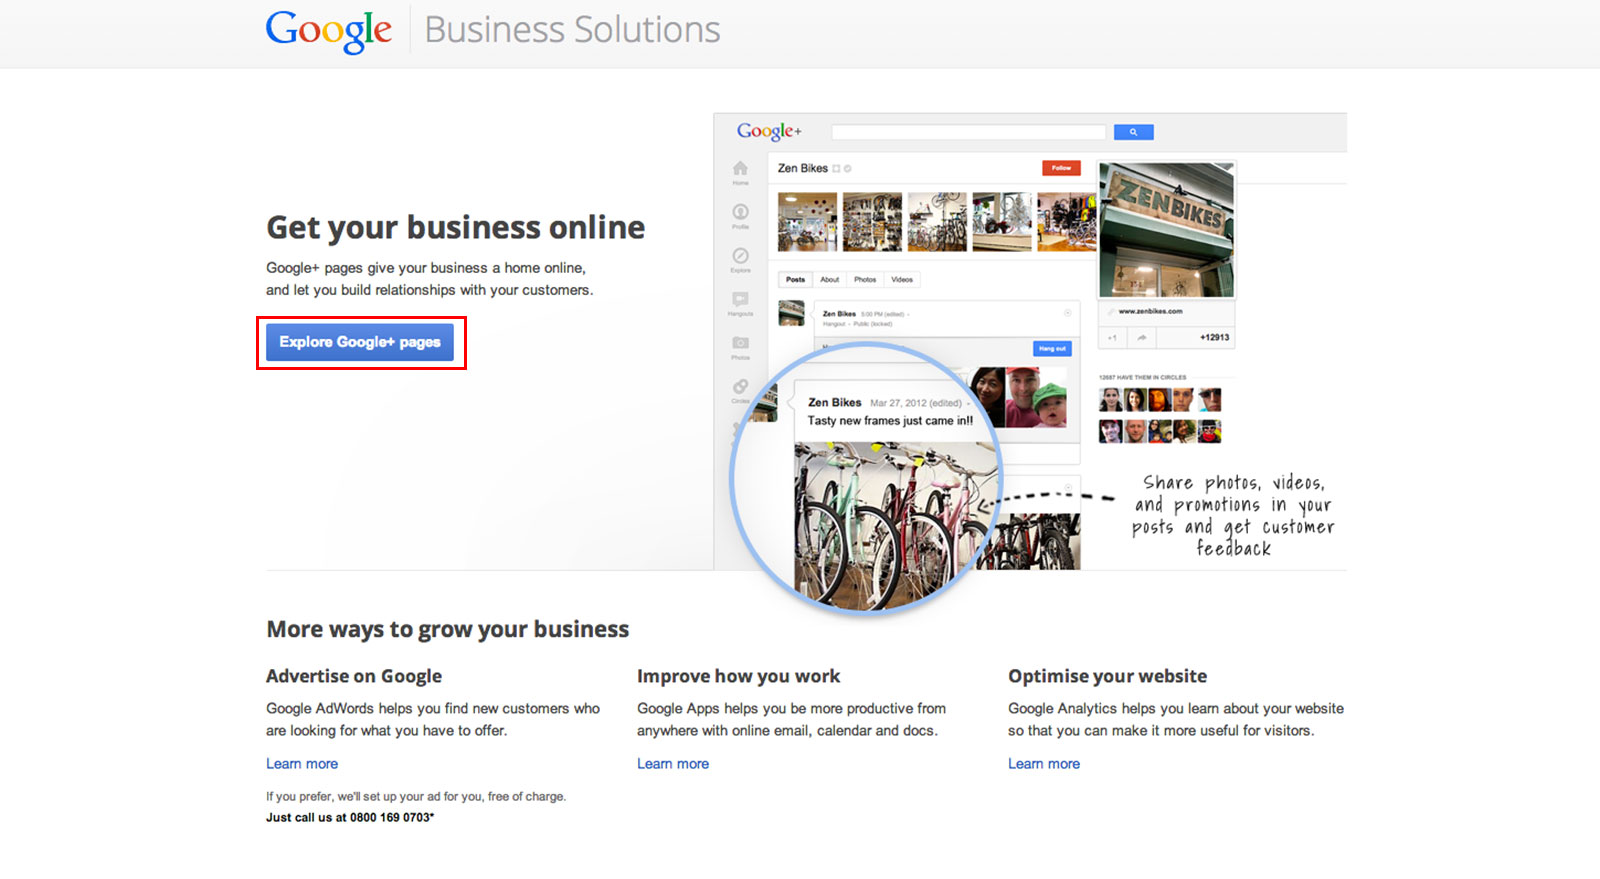 creating a Google Plus profile for a business